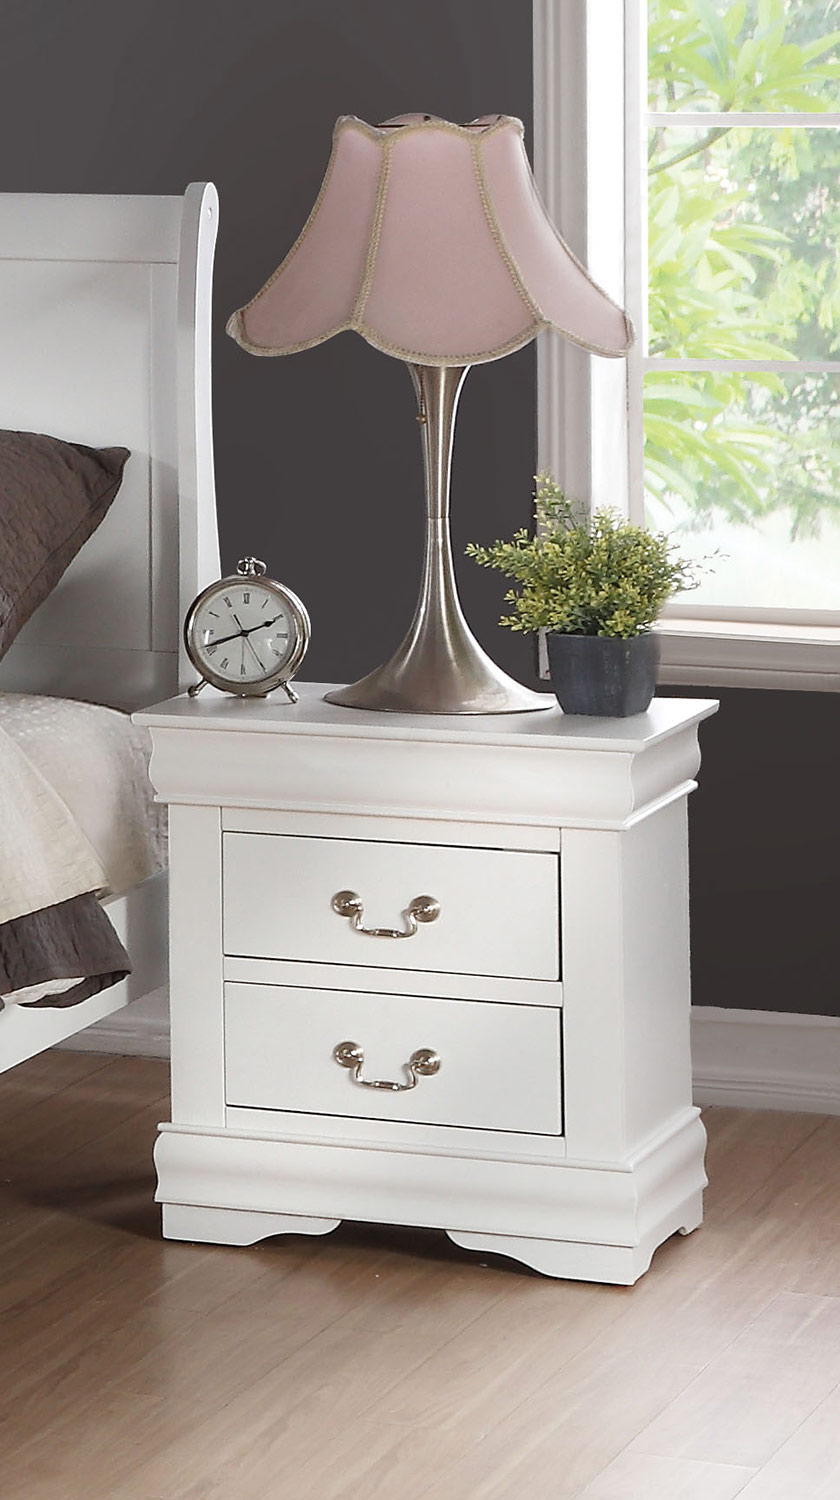 Acme Louis Philippe Nightstand - White